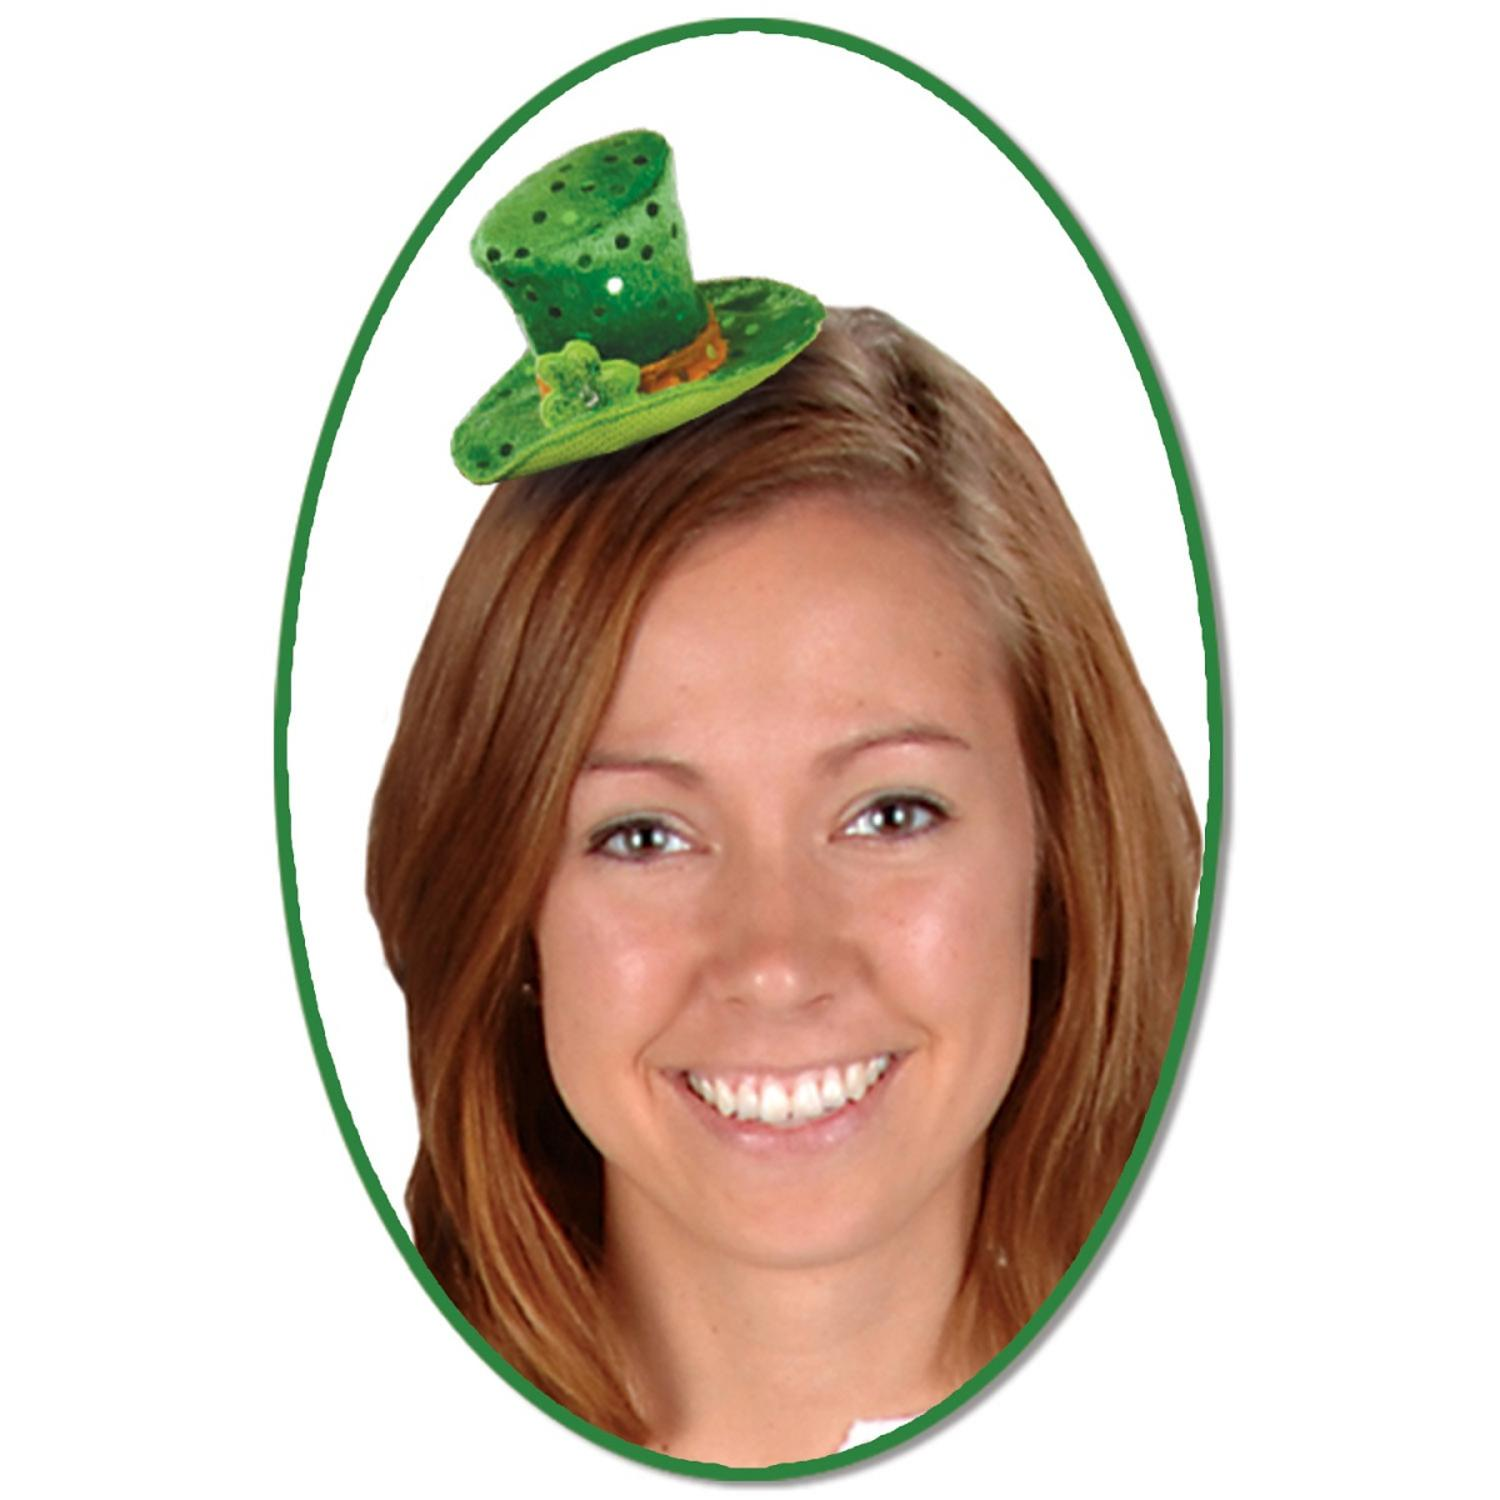 Club Pack of 12 Green Leprechaun Hat Hair Clip St. Patrick's Day Party Favor Costume Accessories